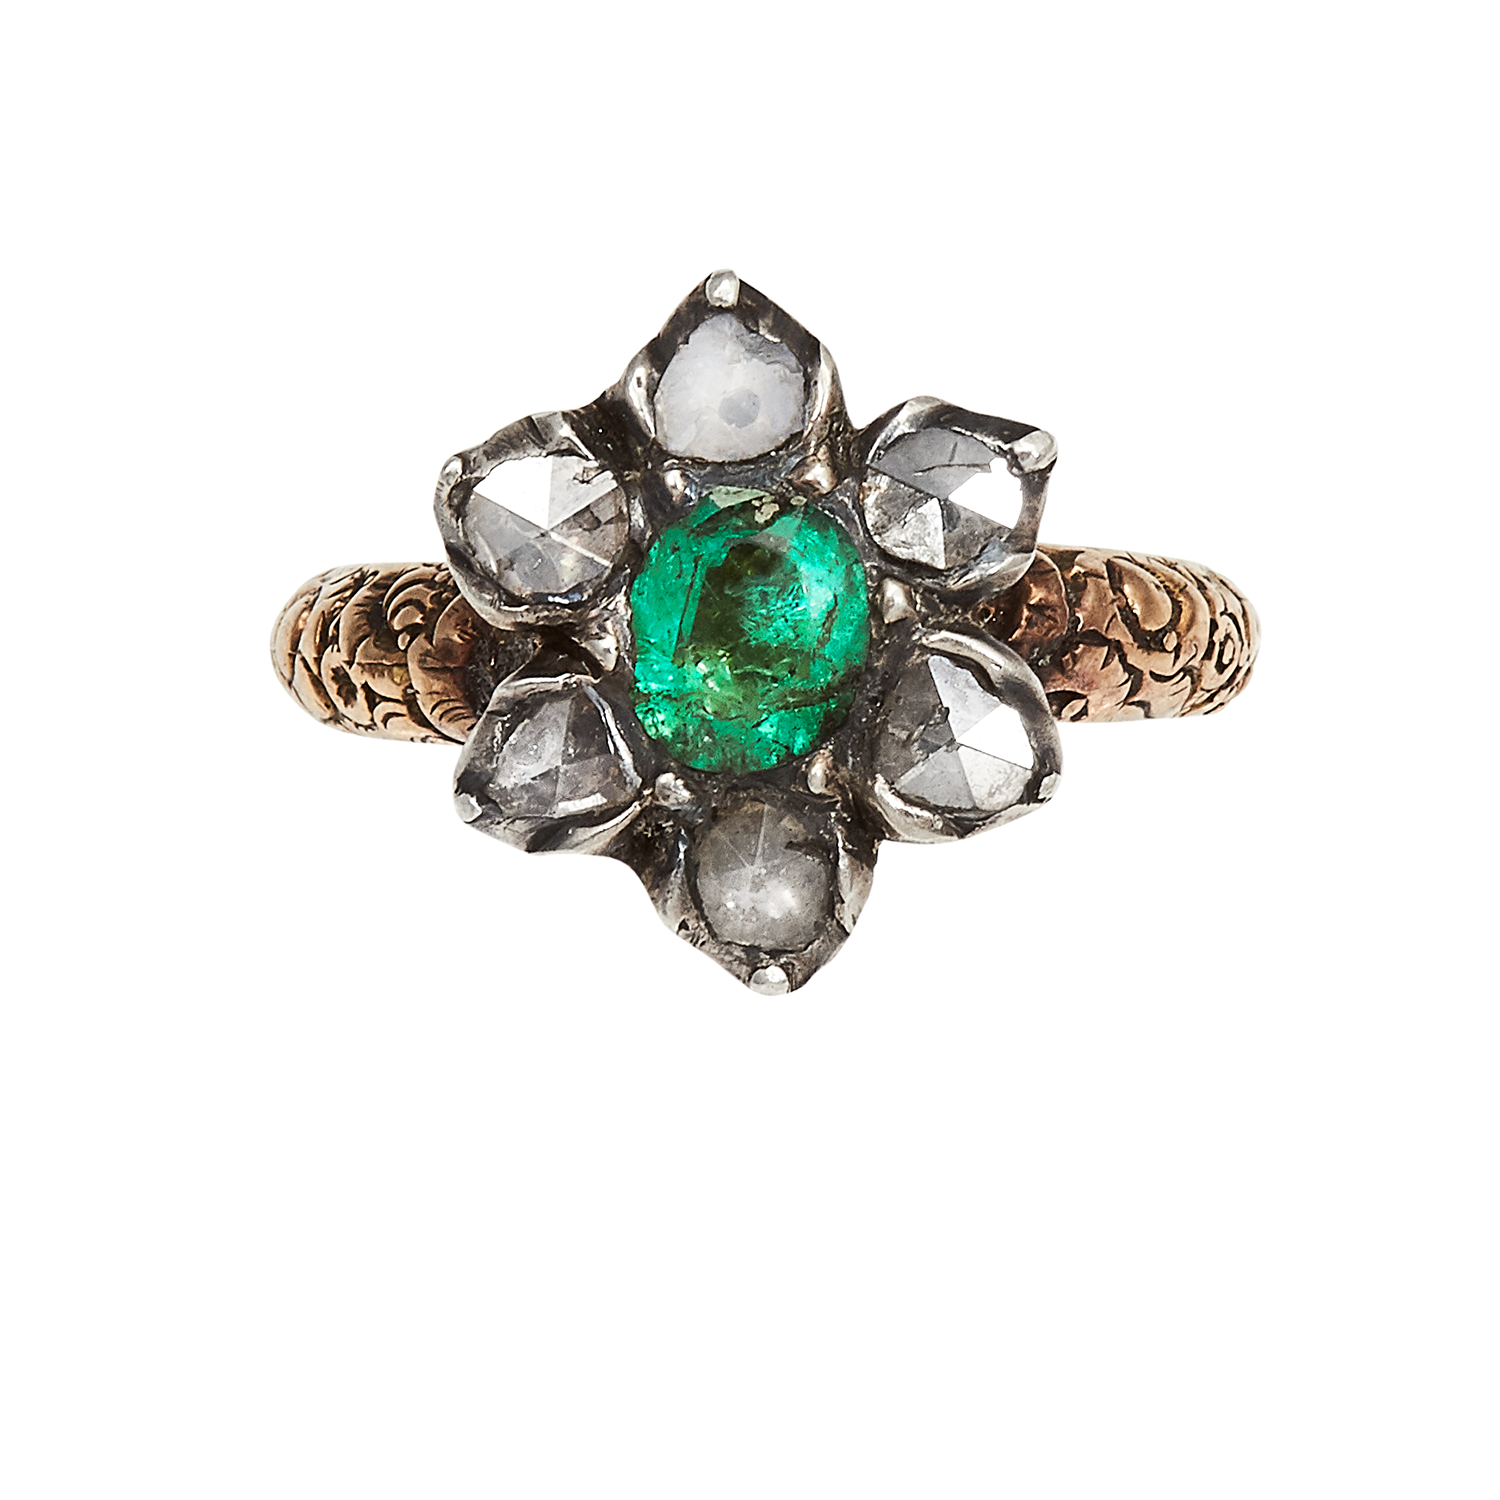 Los 8 - AN ANTIQUE EMERALD AND DIAMOND CLUSTER RING, EARLY 19TH CENTURY in yellow gold and silver, set